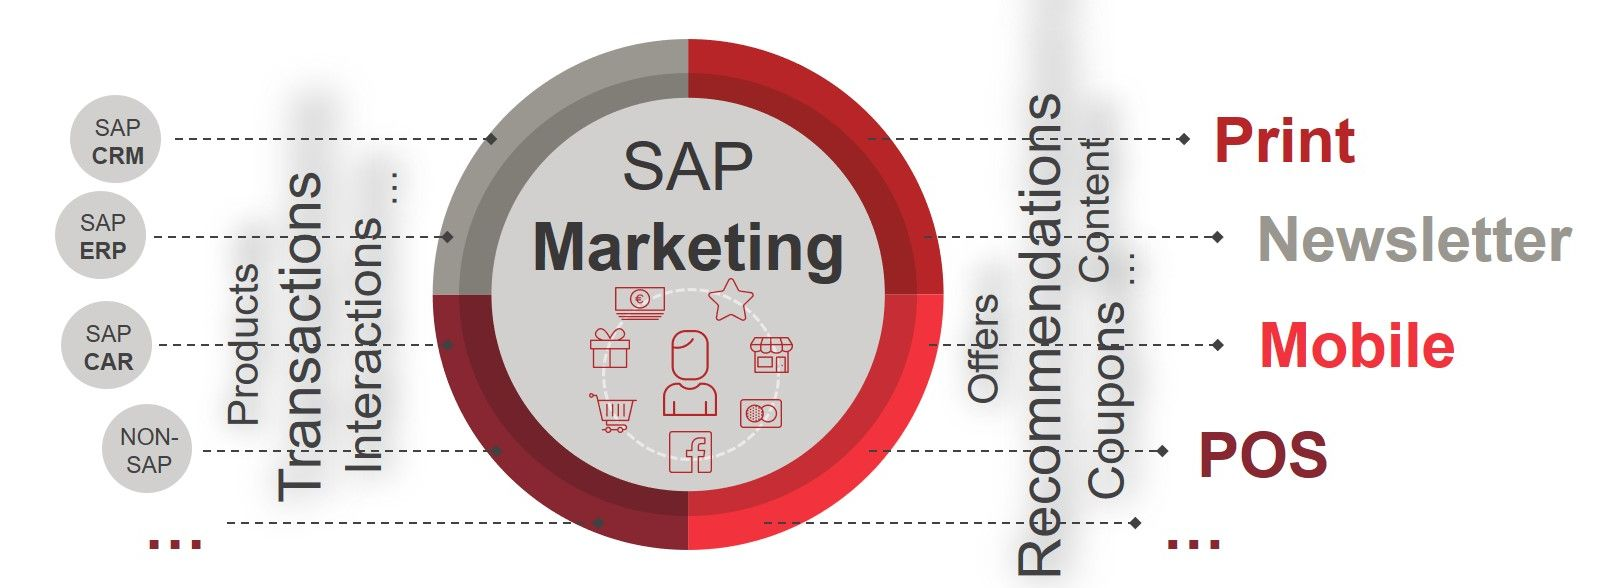 Grafik_SAP_Marketing_EN